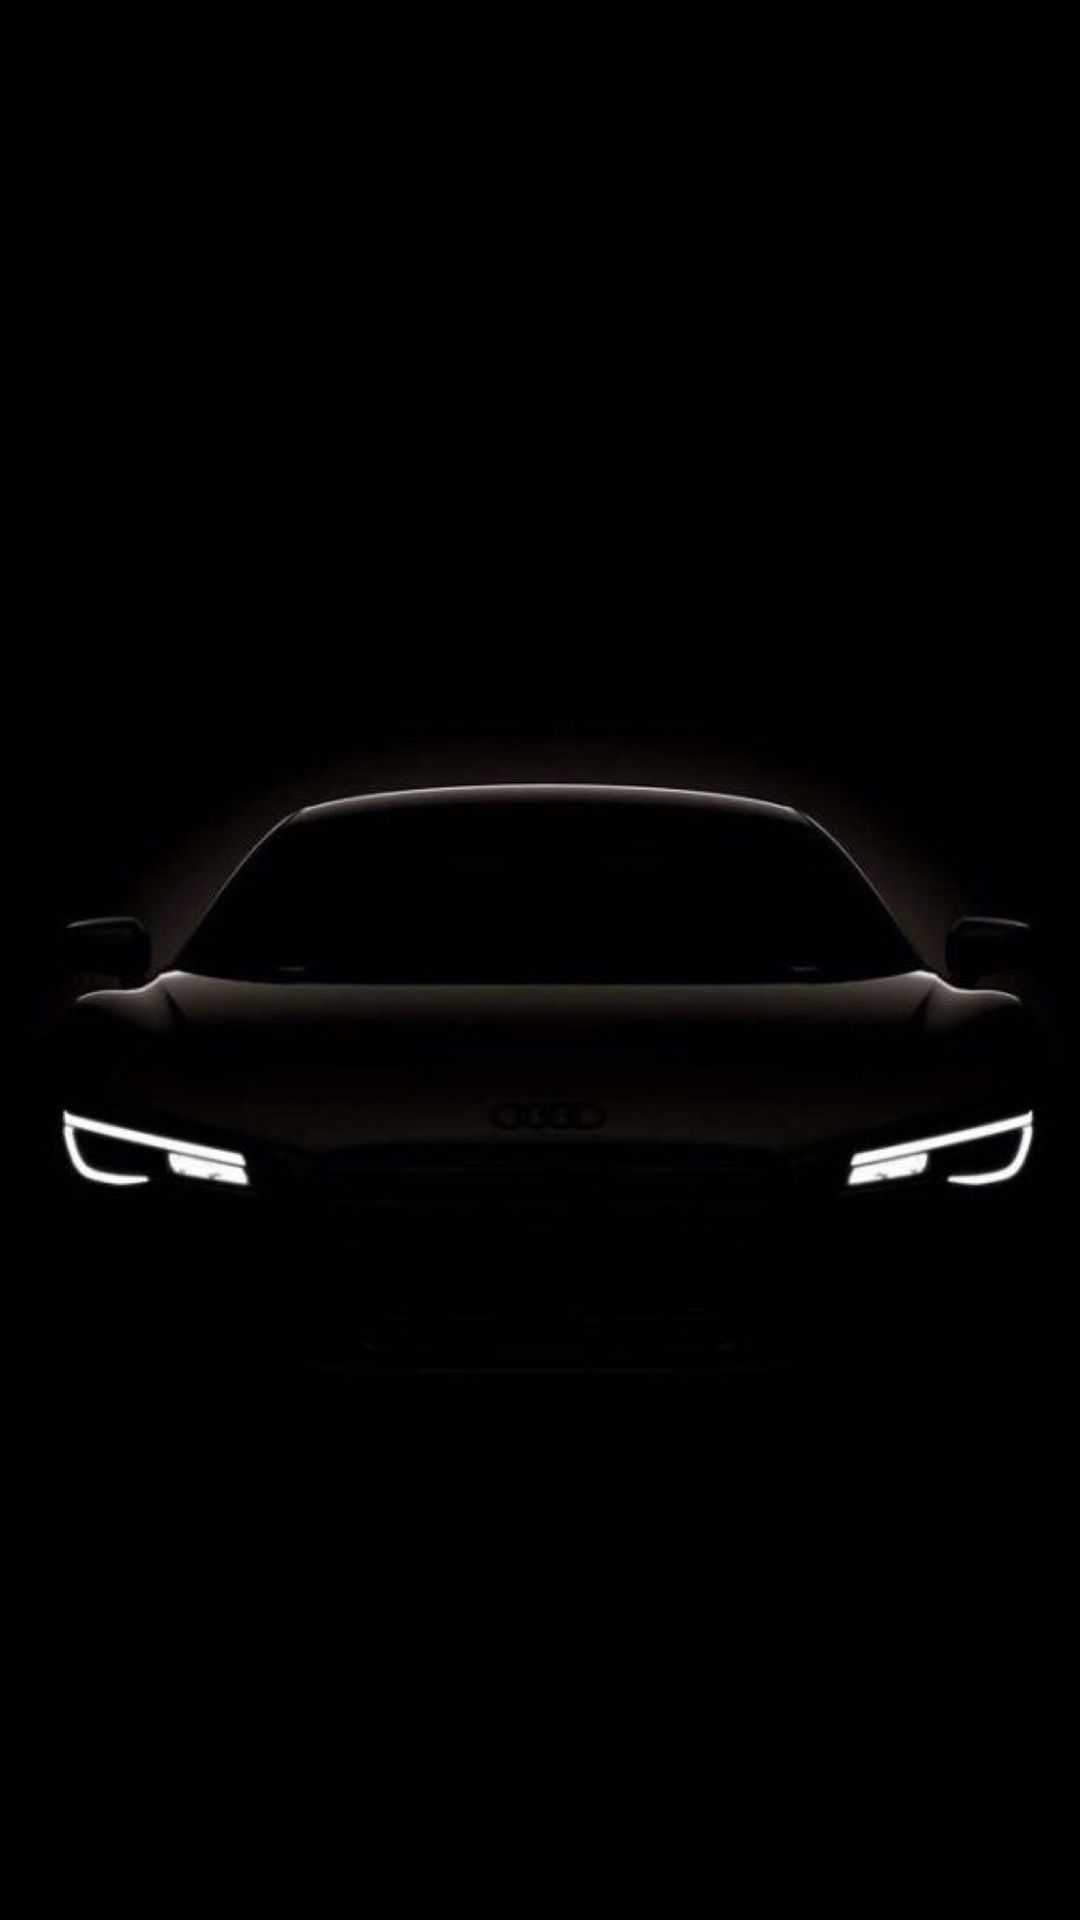 Dark Shiny Concept Car #iPhone #7 #wallpaper